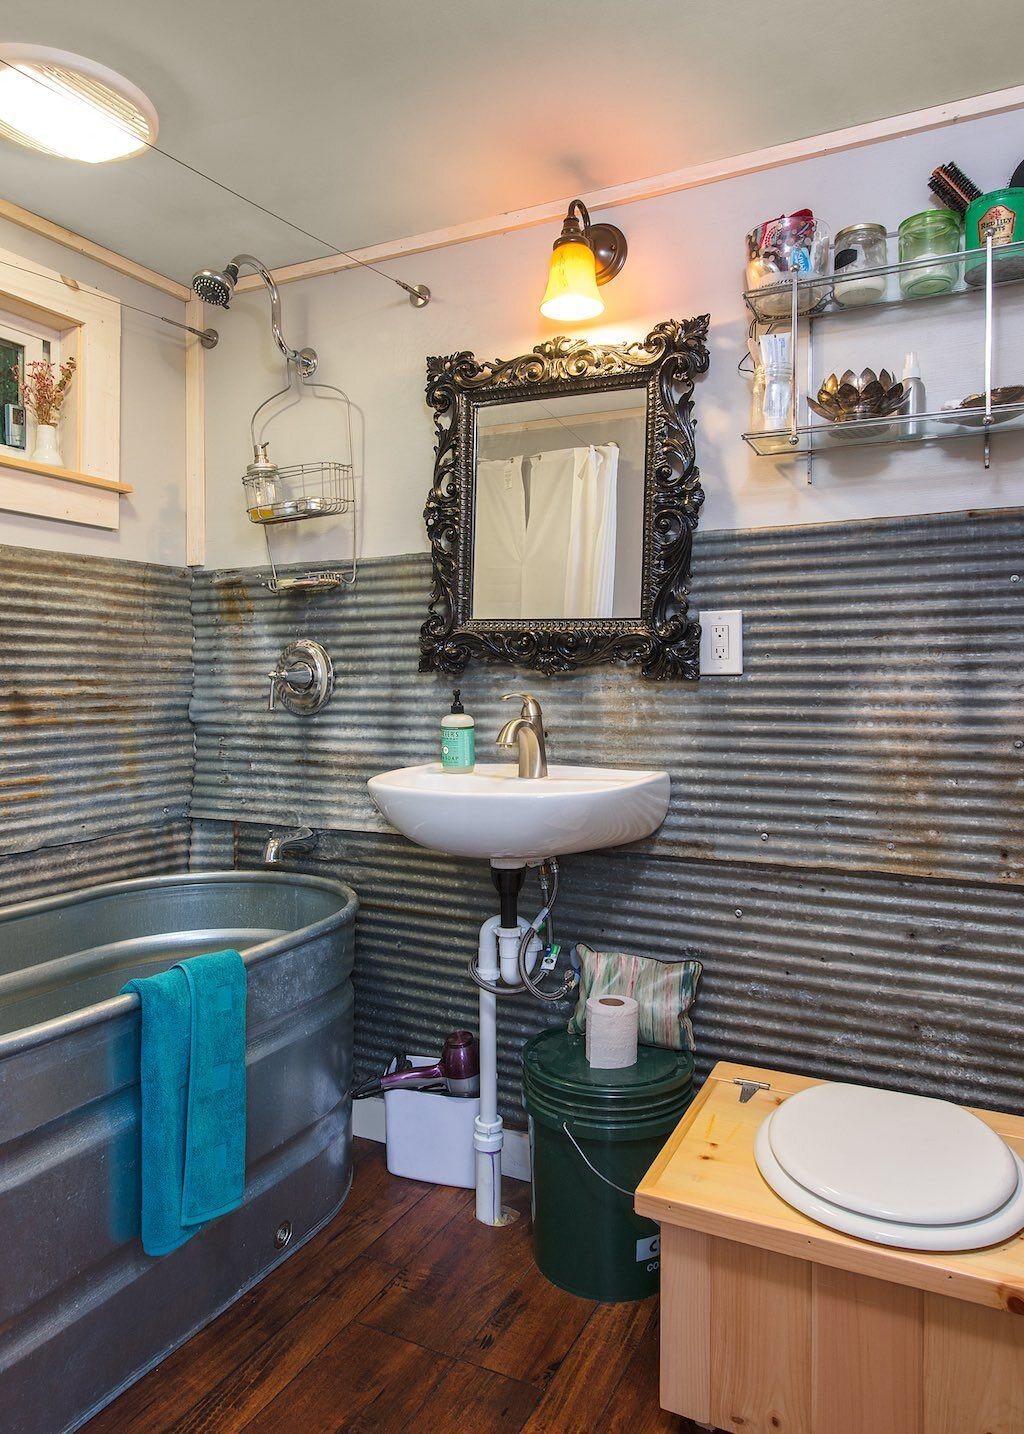 Bathroom Renovations Vermont: A Tiny House Built With Salvaged Materials